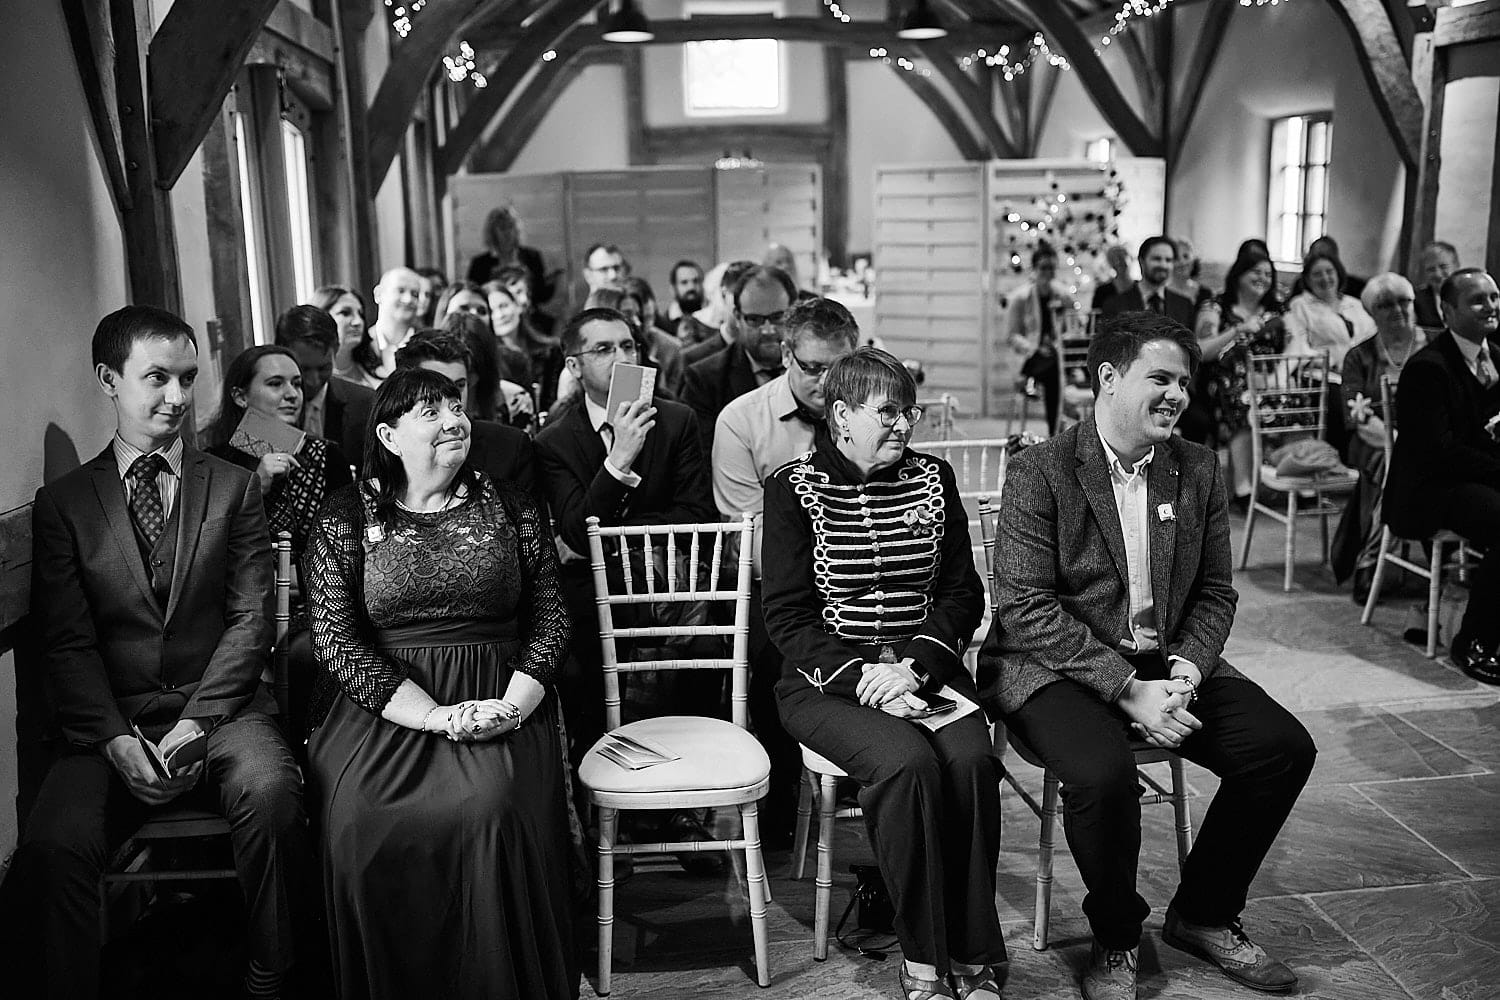 Friends and family look on proudly at the wedding of their friend